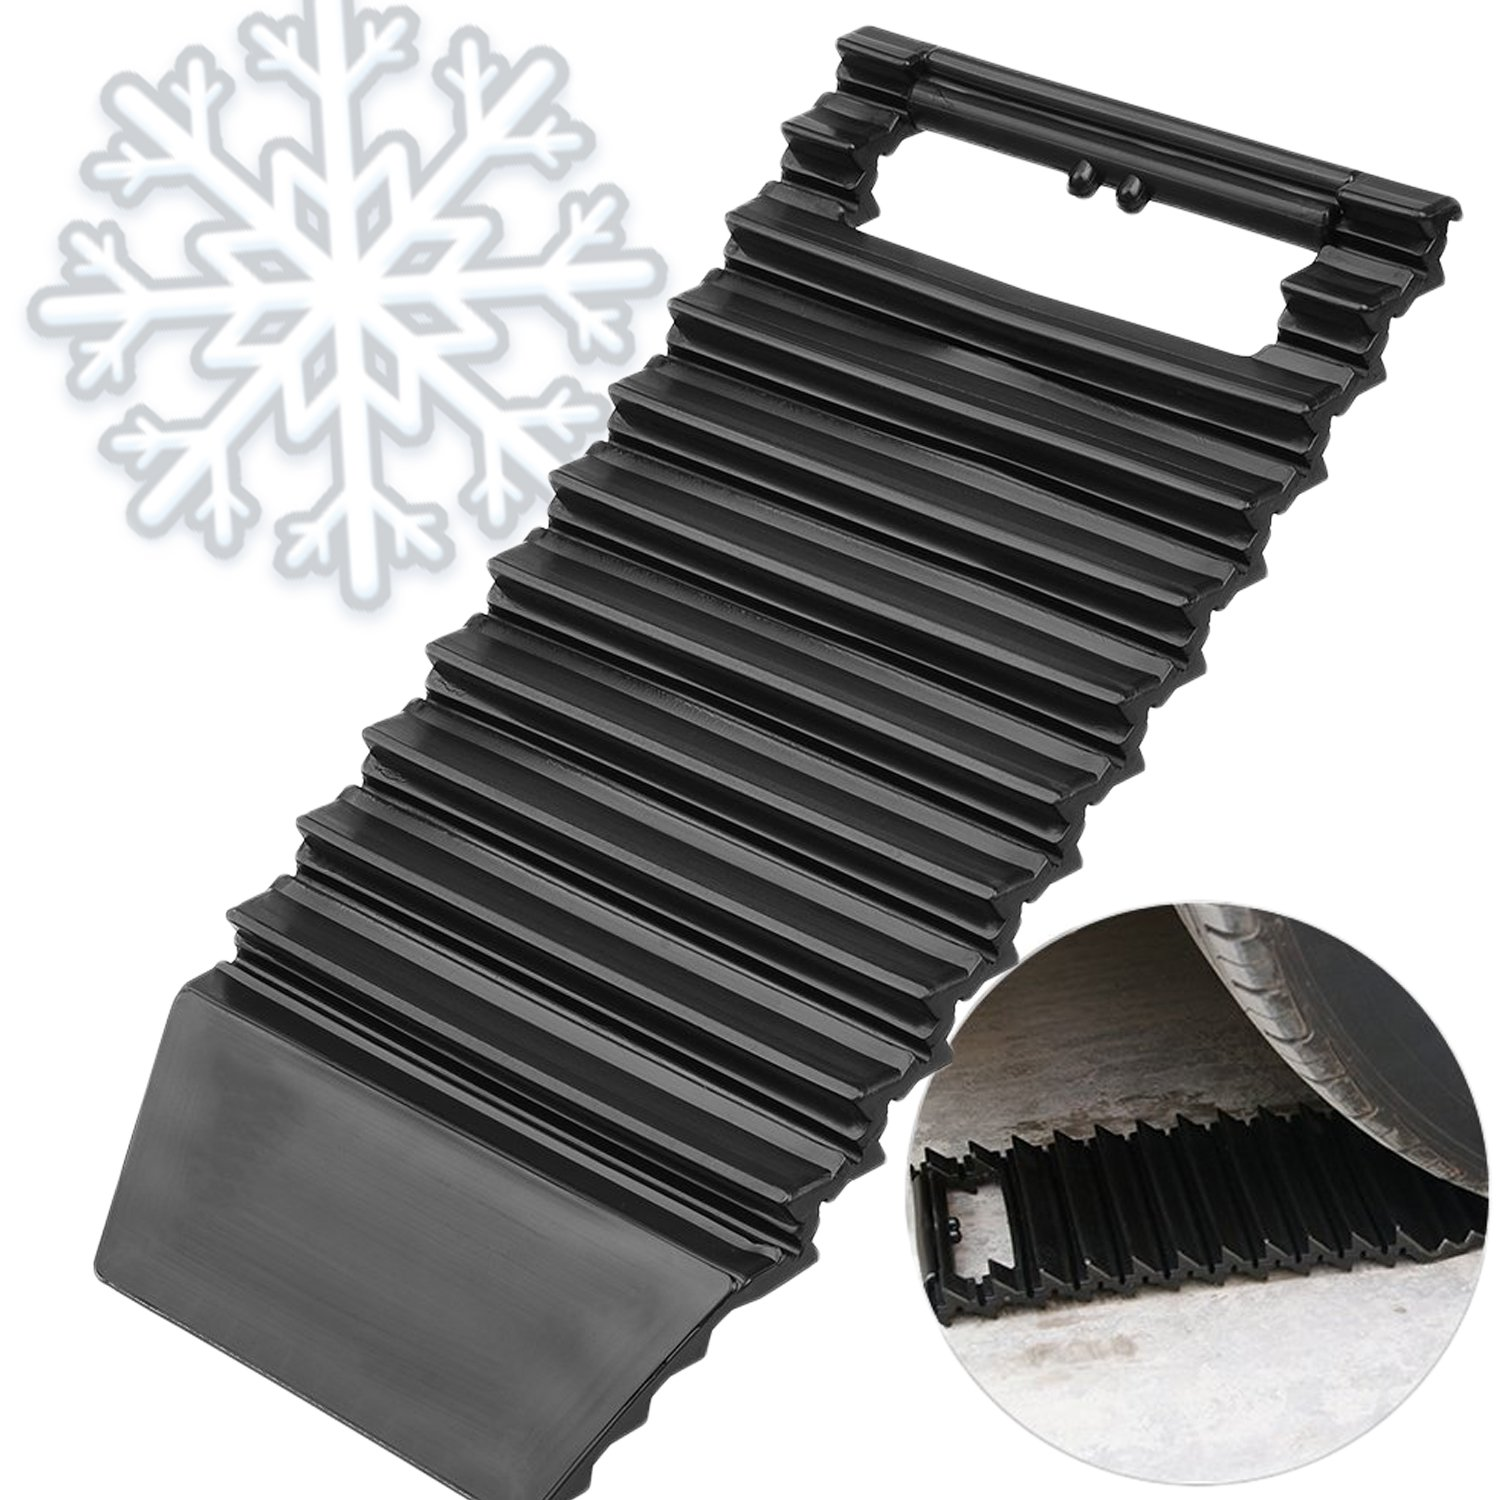 Car Traction Mat And Ice Scraper 2-in-1 Tool - Auto Tread Ideal to Unstuck Your Car Tire From Snow, Ice, Mud, Sand Doubles As Windshield Ice Scraper to Clear Snow And Ice - 1 Piece Ideas In Life 4332981617